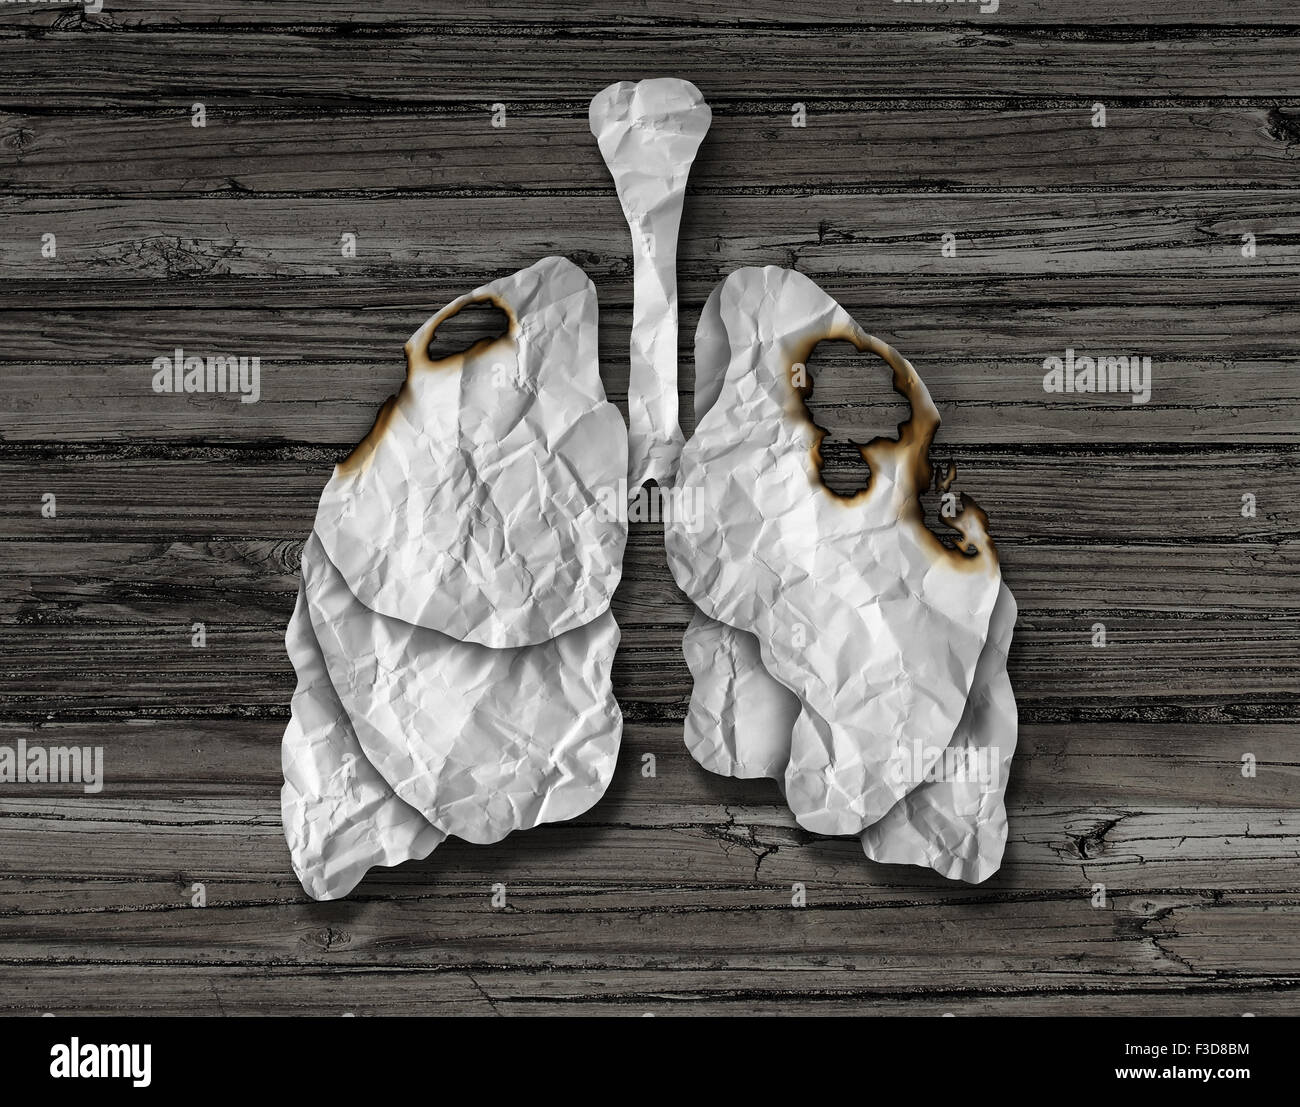 Human lung cancer concept or illness and losing human lungs health care symbol as a decline in respiratory function - Stock Image